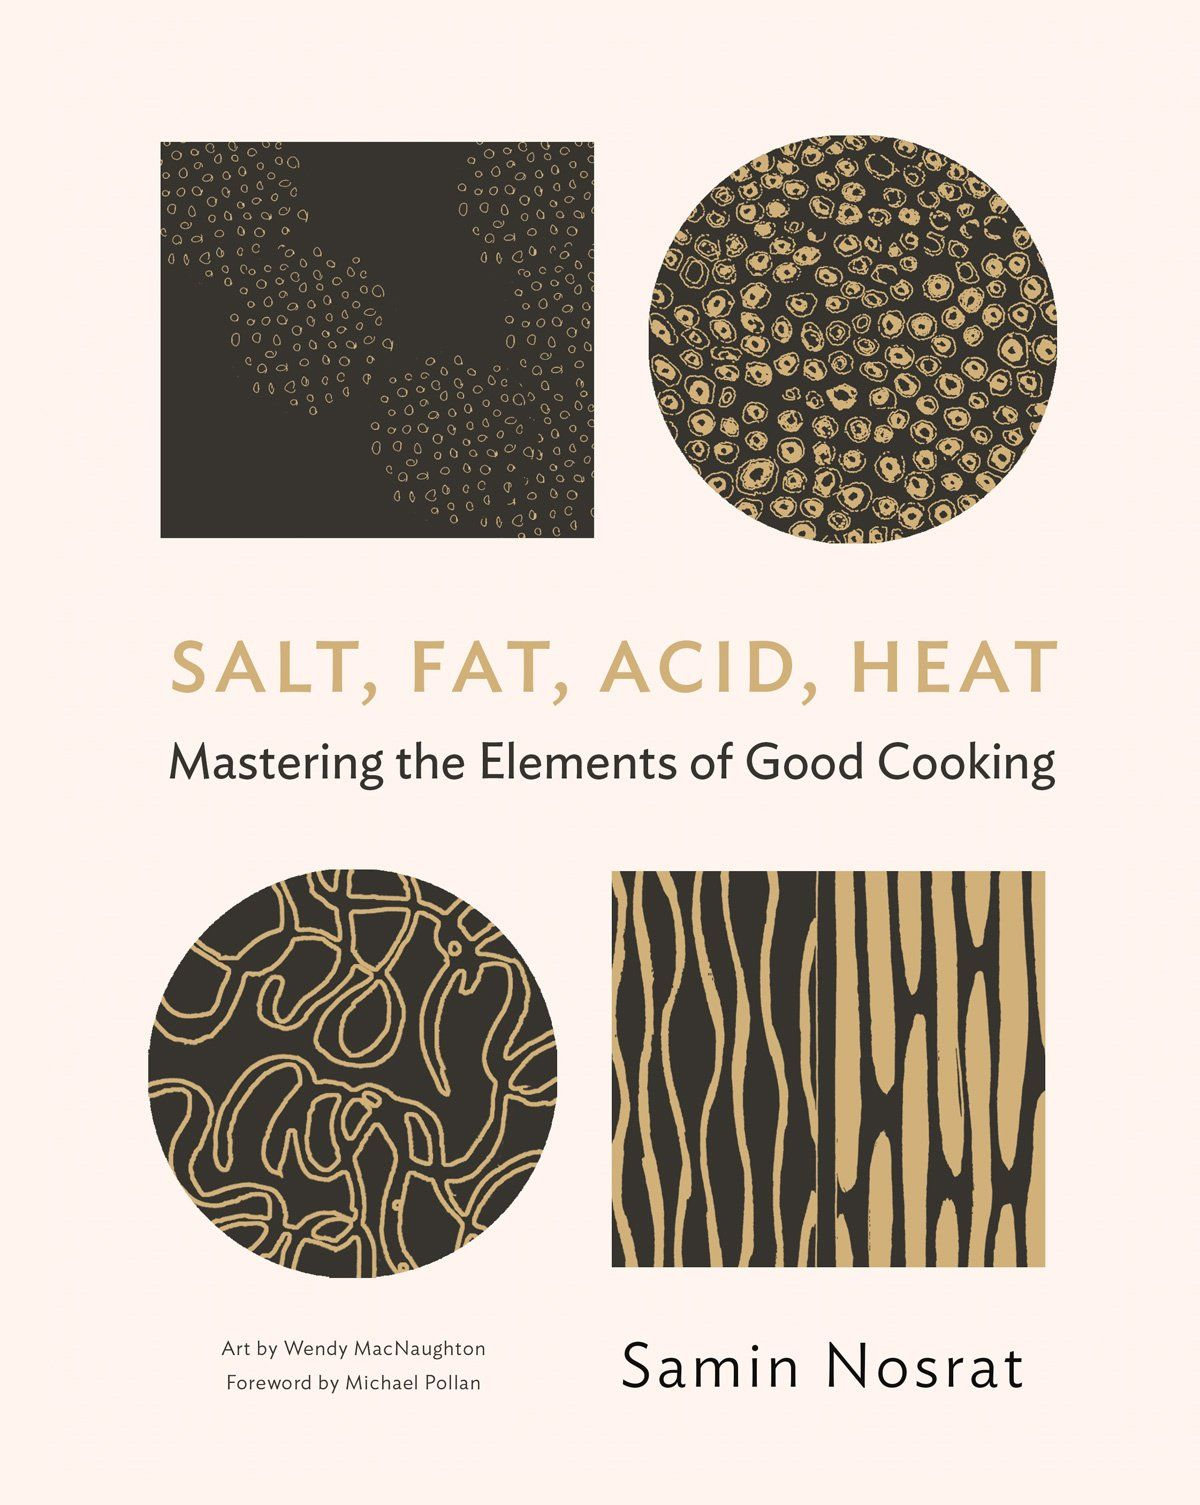 Salt, Fat, Acid, Heat by Samin Nosrat: Quite simply an essential book. Where do I start? From the title alone, this book sets out its stall, and captures the essence of what cooking is about. And yes, while this book teaches so much about the science of cooking, it also conveys its poetry. It is a wonderful, cosy, intimate read as well as an inspiringly instructional one.